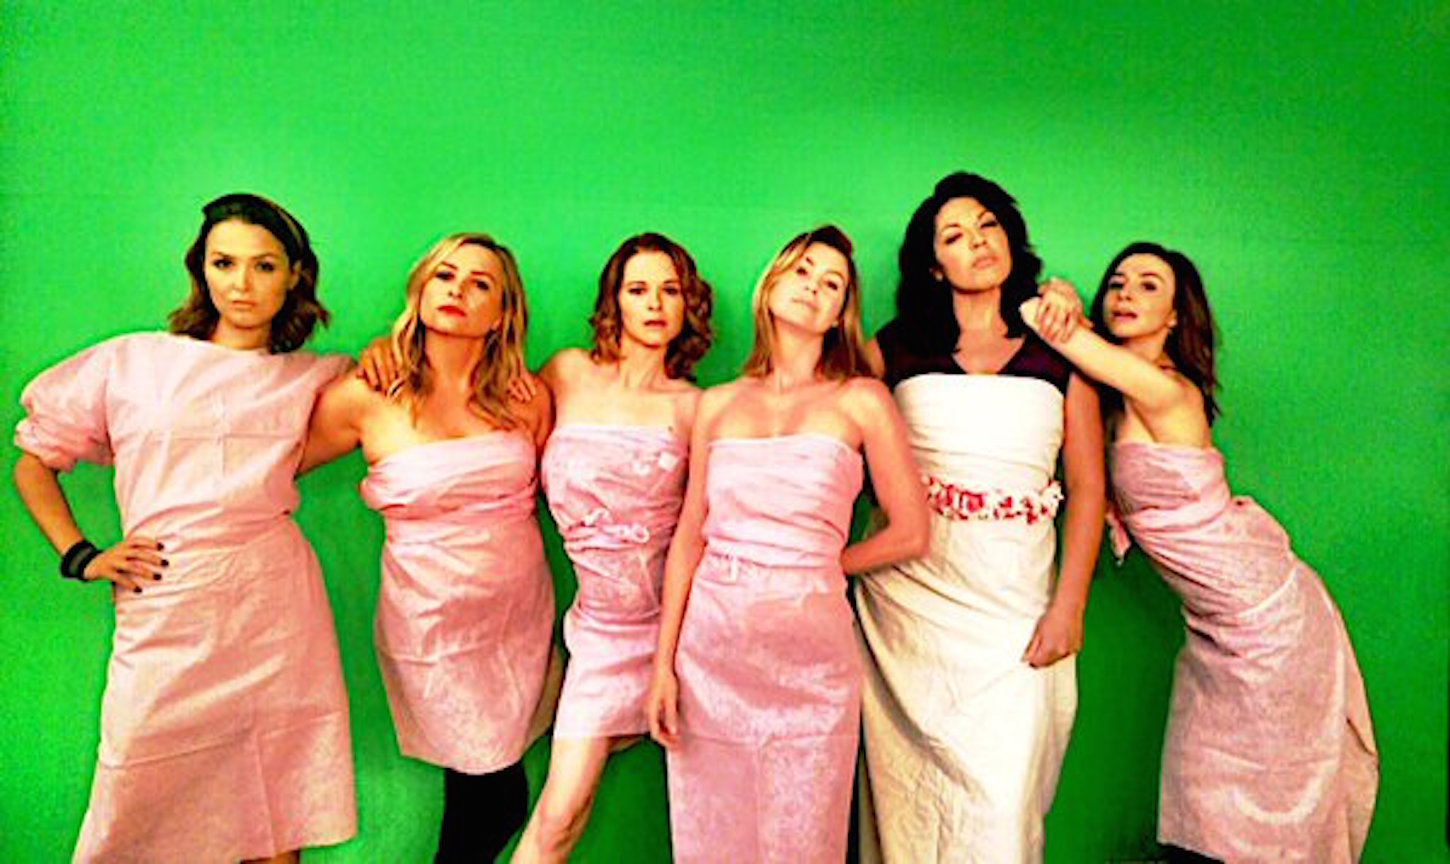 Bridesmaids movie dresses images braidsmaid dress cocktail bridesmaid dresses greys anatomy wedding dresses asian bridesmaid dresses greys anatomy 81 ombrellifo images ombrellifo Gallery